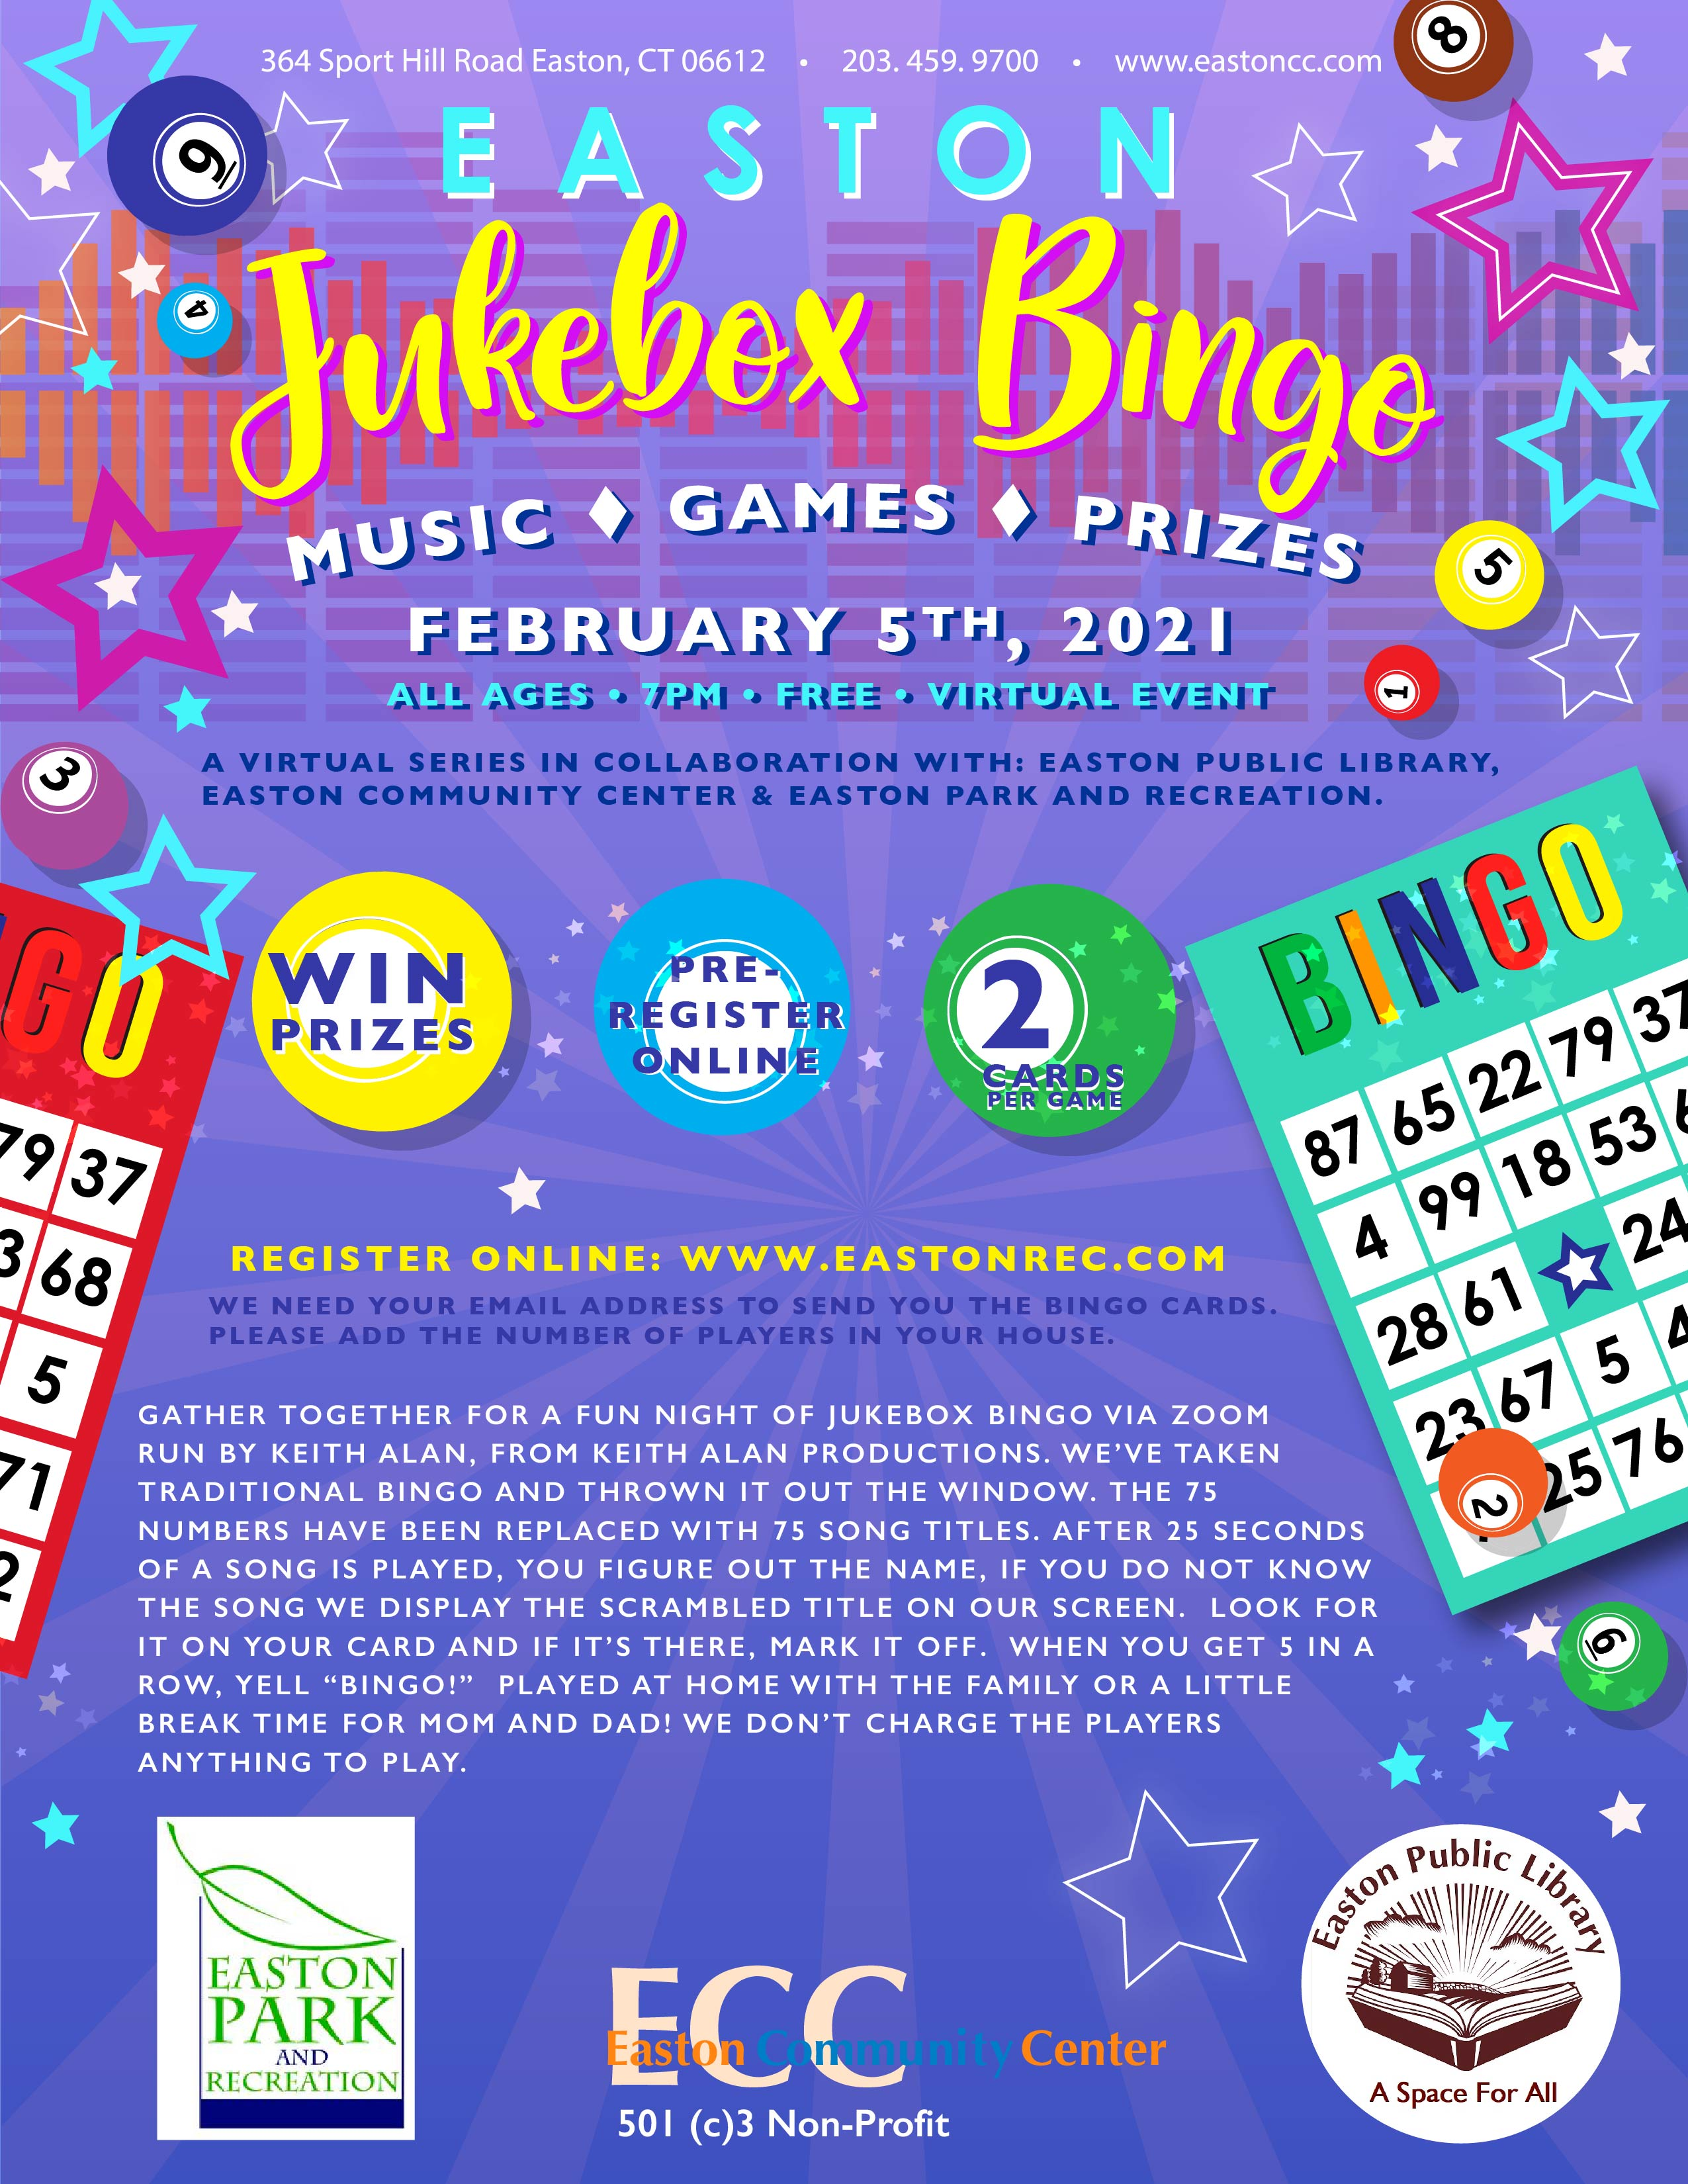 Jukebox Bingo Night!